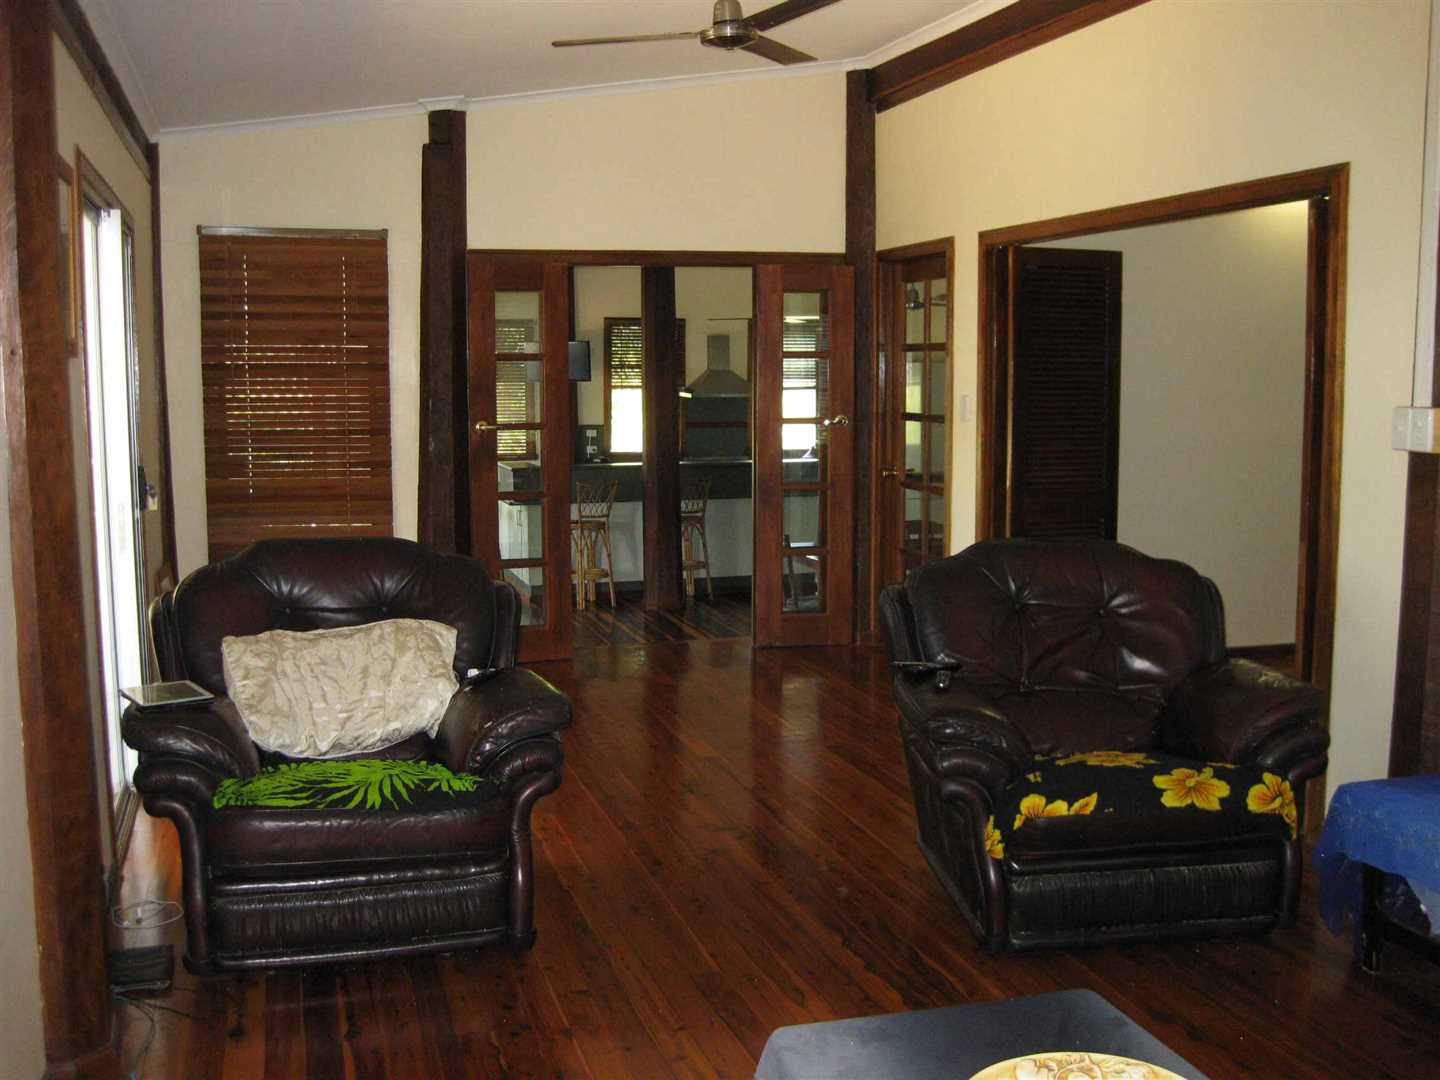 Inside view of part of home showing part of lounge, photo 2